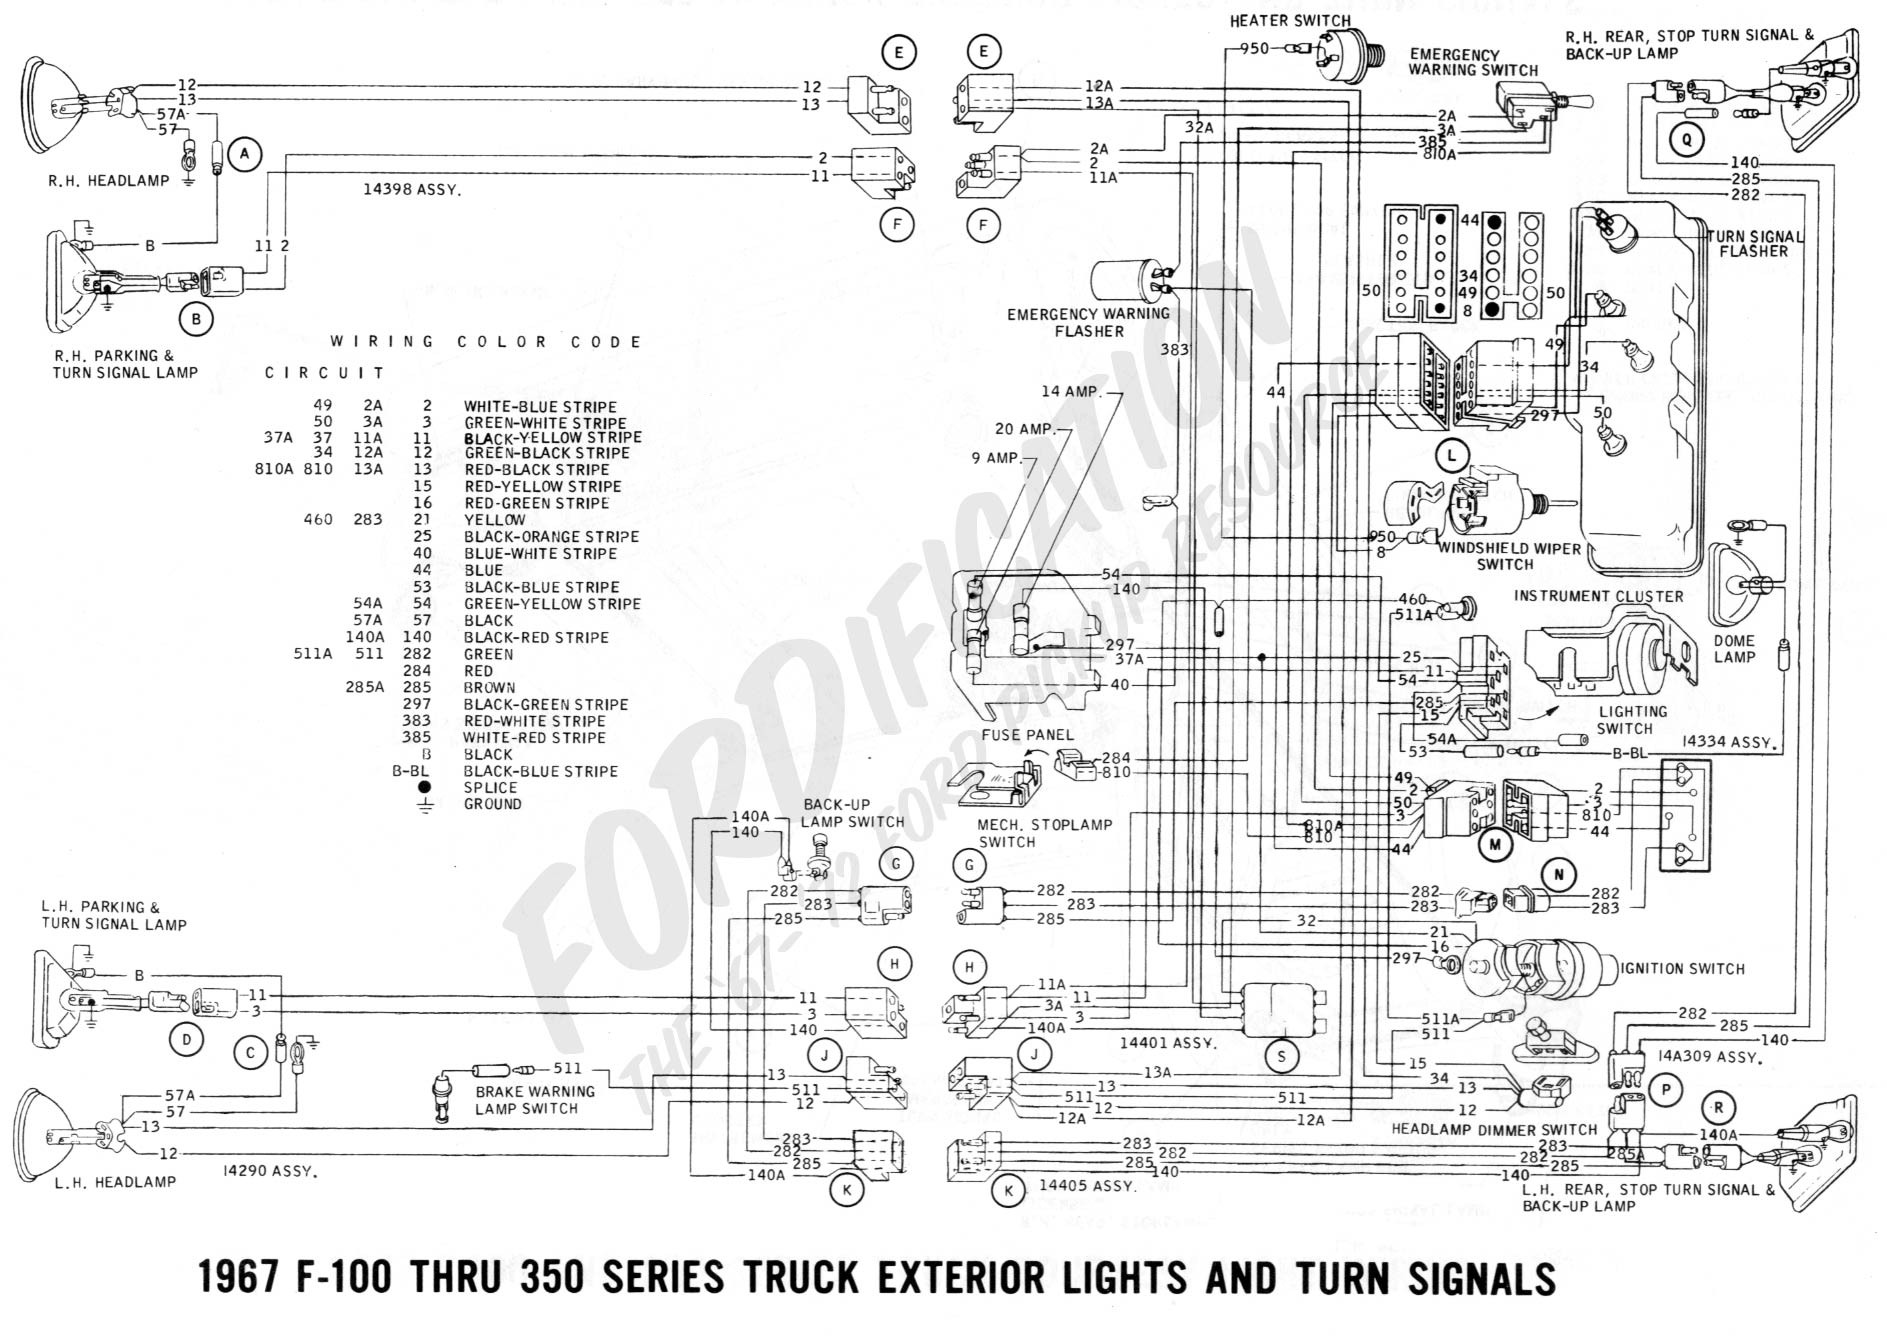 1964 fairlane wiring diagram manual wiring diagram database Ford Econoline Wiring-Diagram Fuel details about ford 1964 falcon wiring diagram manual 64 basic 1964 fairlane wiring diagram manual